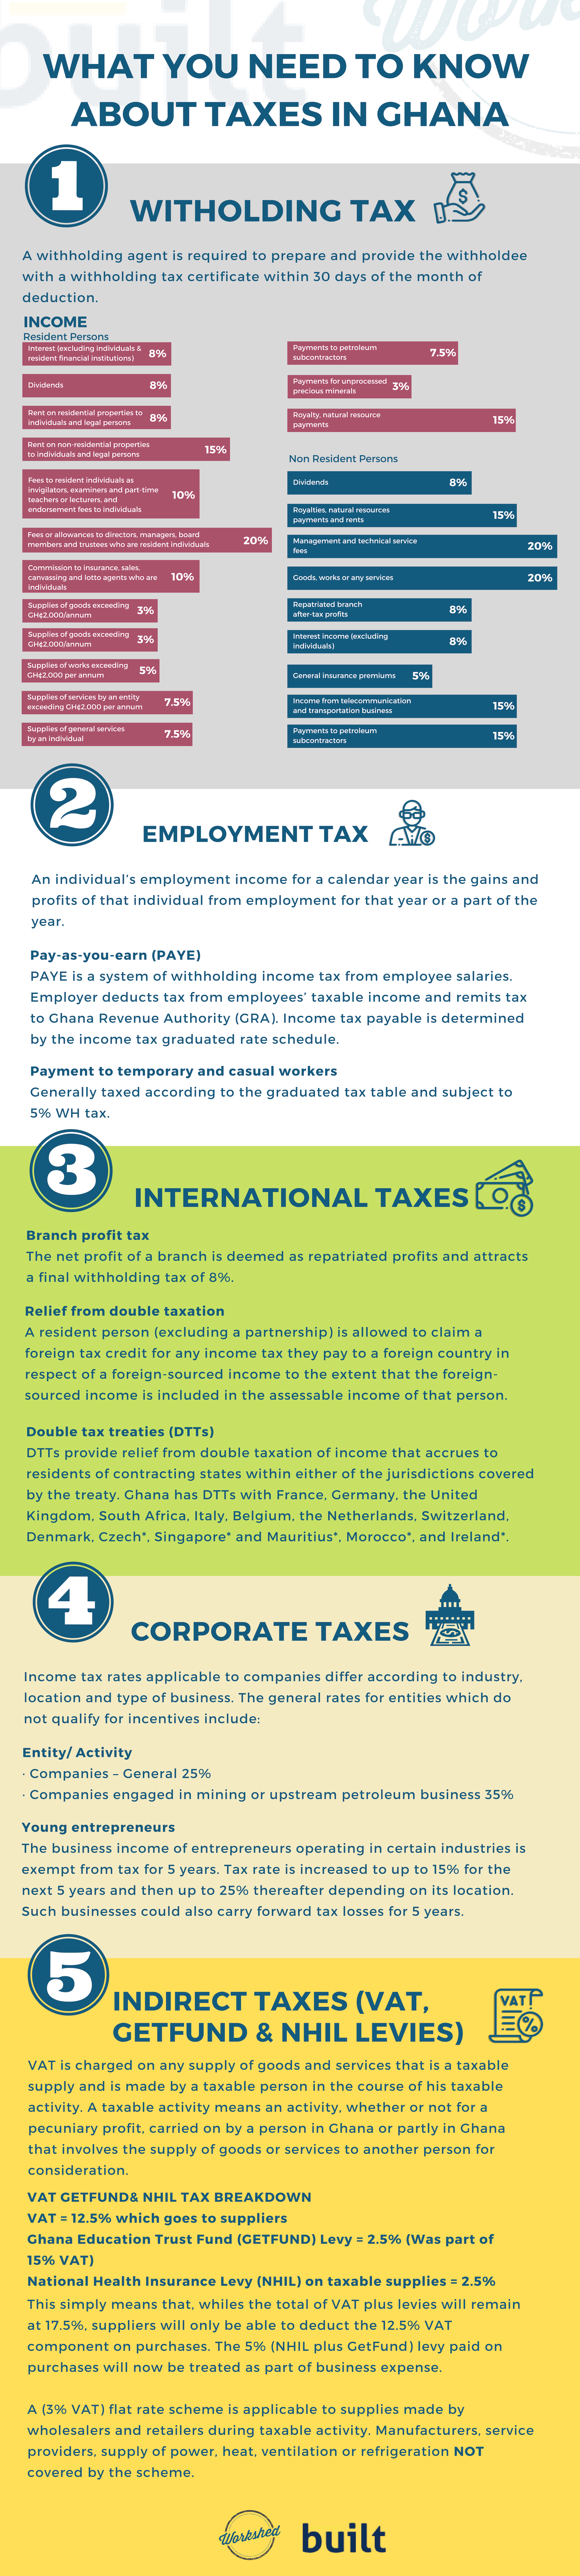 What you need to know about taxes in Ghana